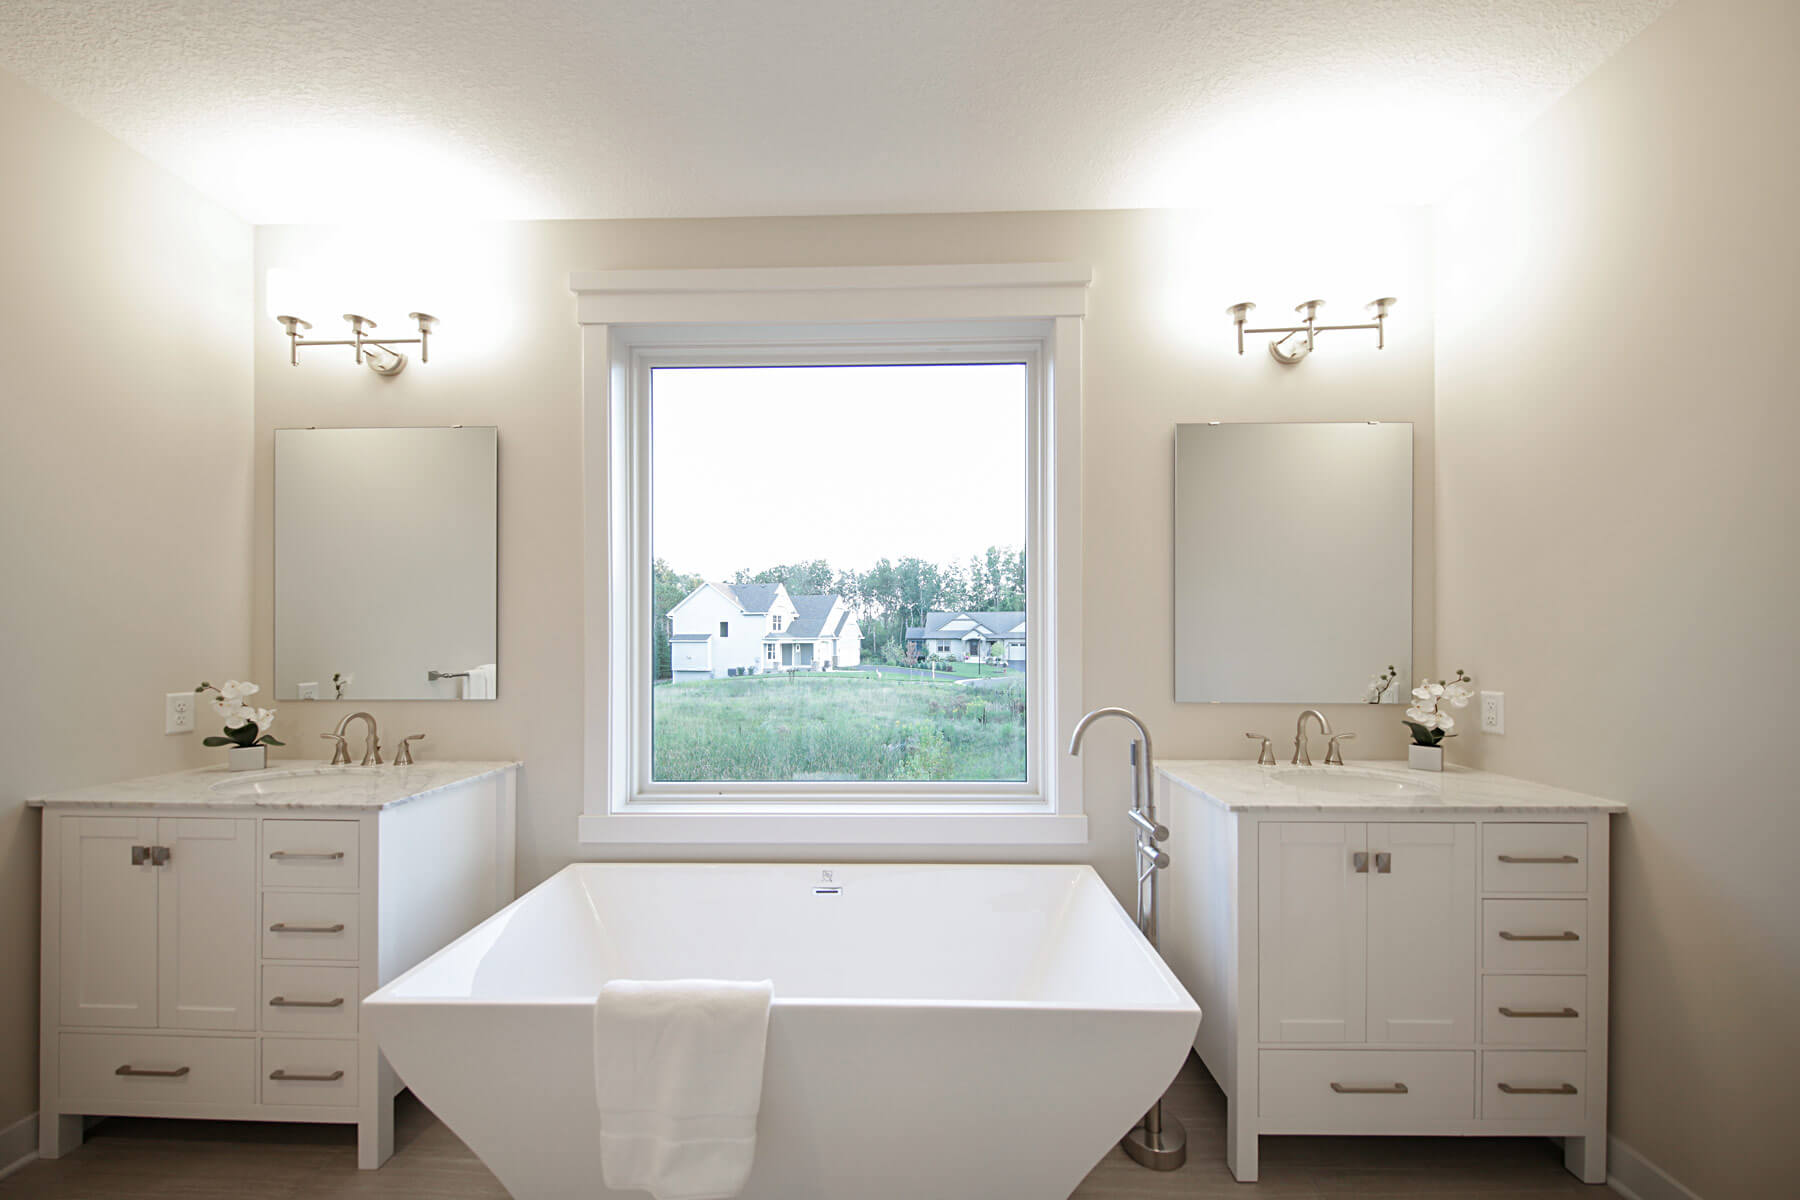 Twin Cities New Construction Monterey Court Home Stillwater Minnesota master bathroom built by Red Pine Builders